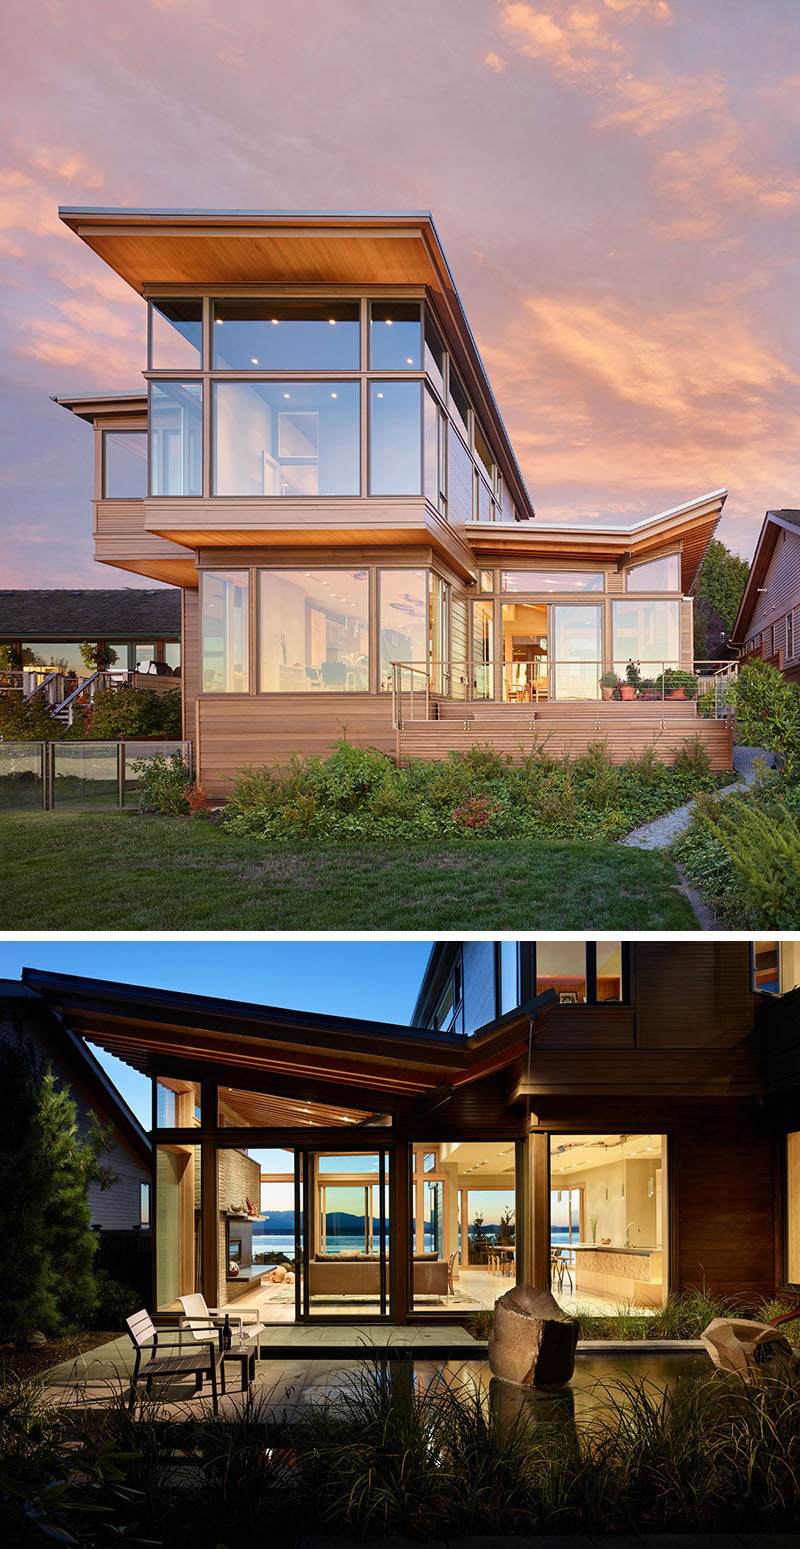 20 Awesome Examples Of Pacific Northwest Architecture // The over hanging eaves on this home expose the wood detailing and prevent rain water from eroding the foundation of the house.